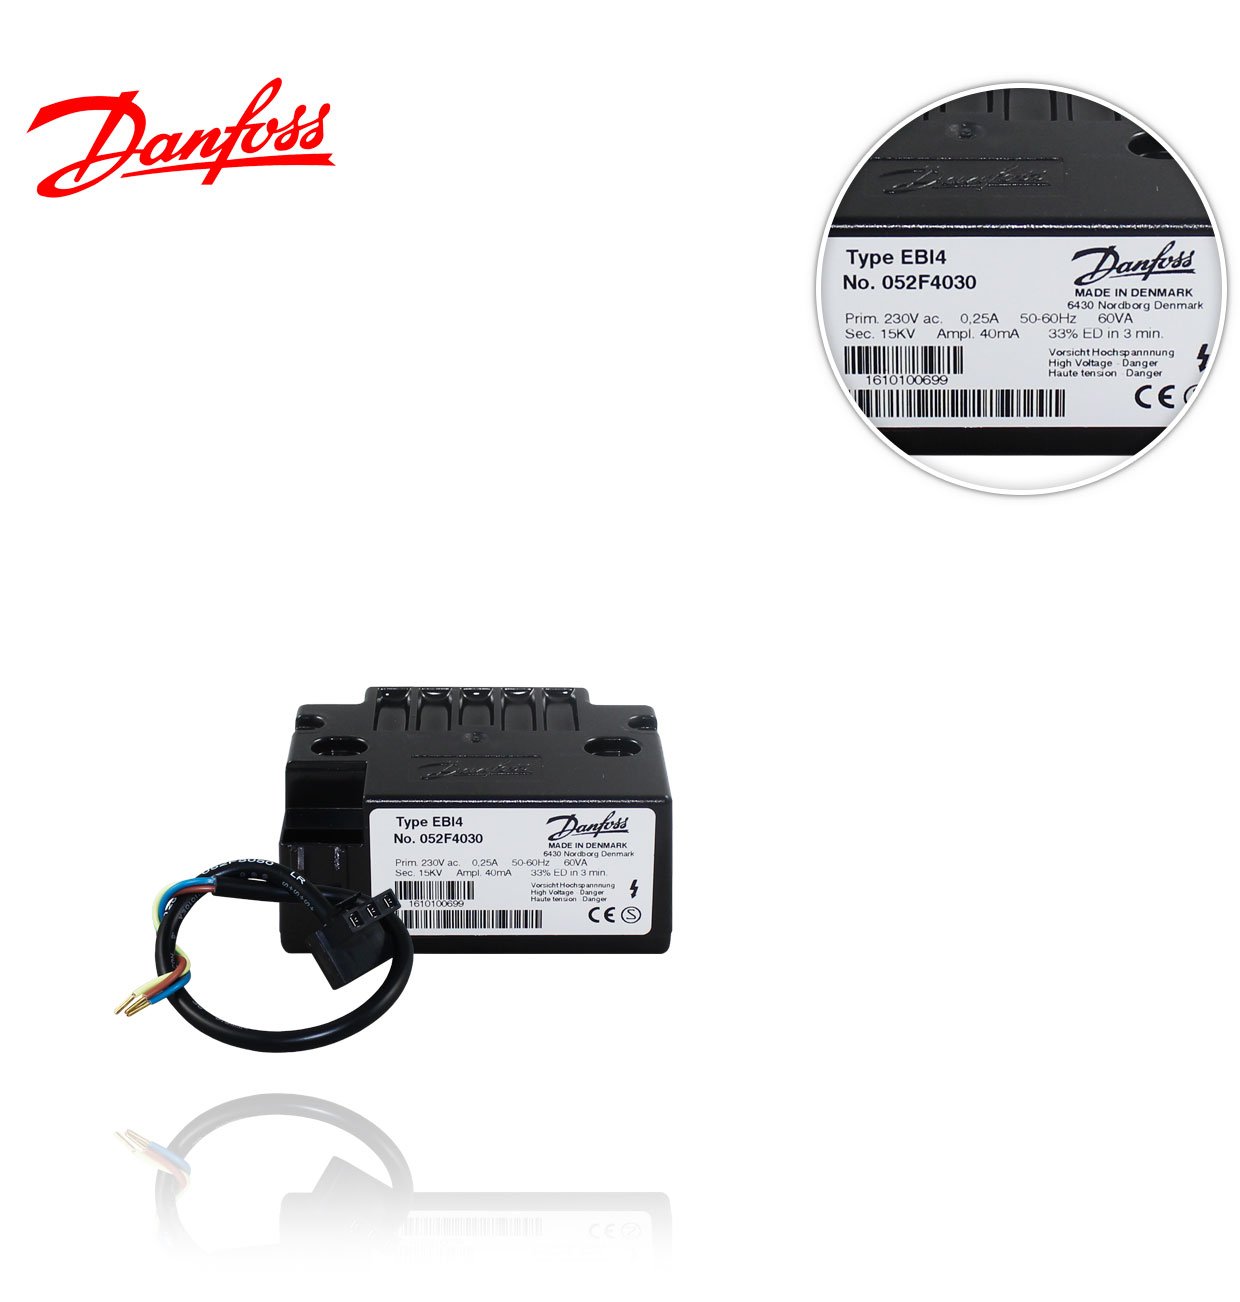 052F0030 / 052F4030 EBI4 TRANSFORMADOR DANFOSS con cable